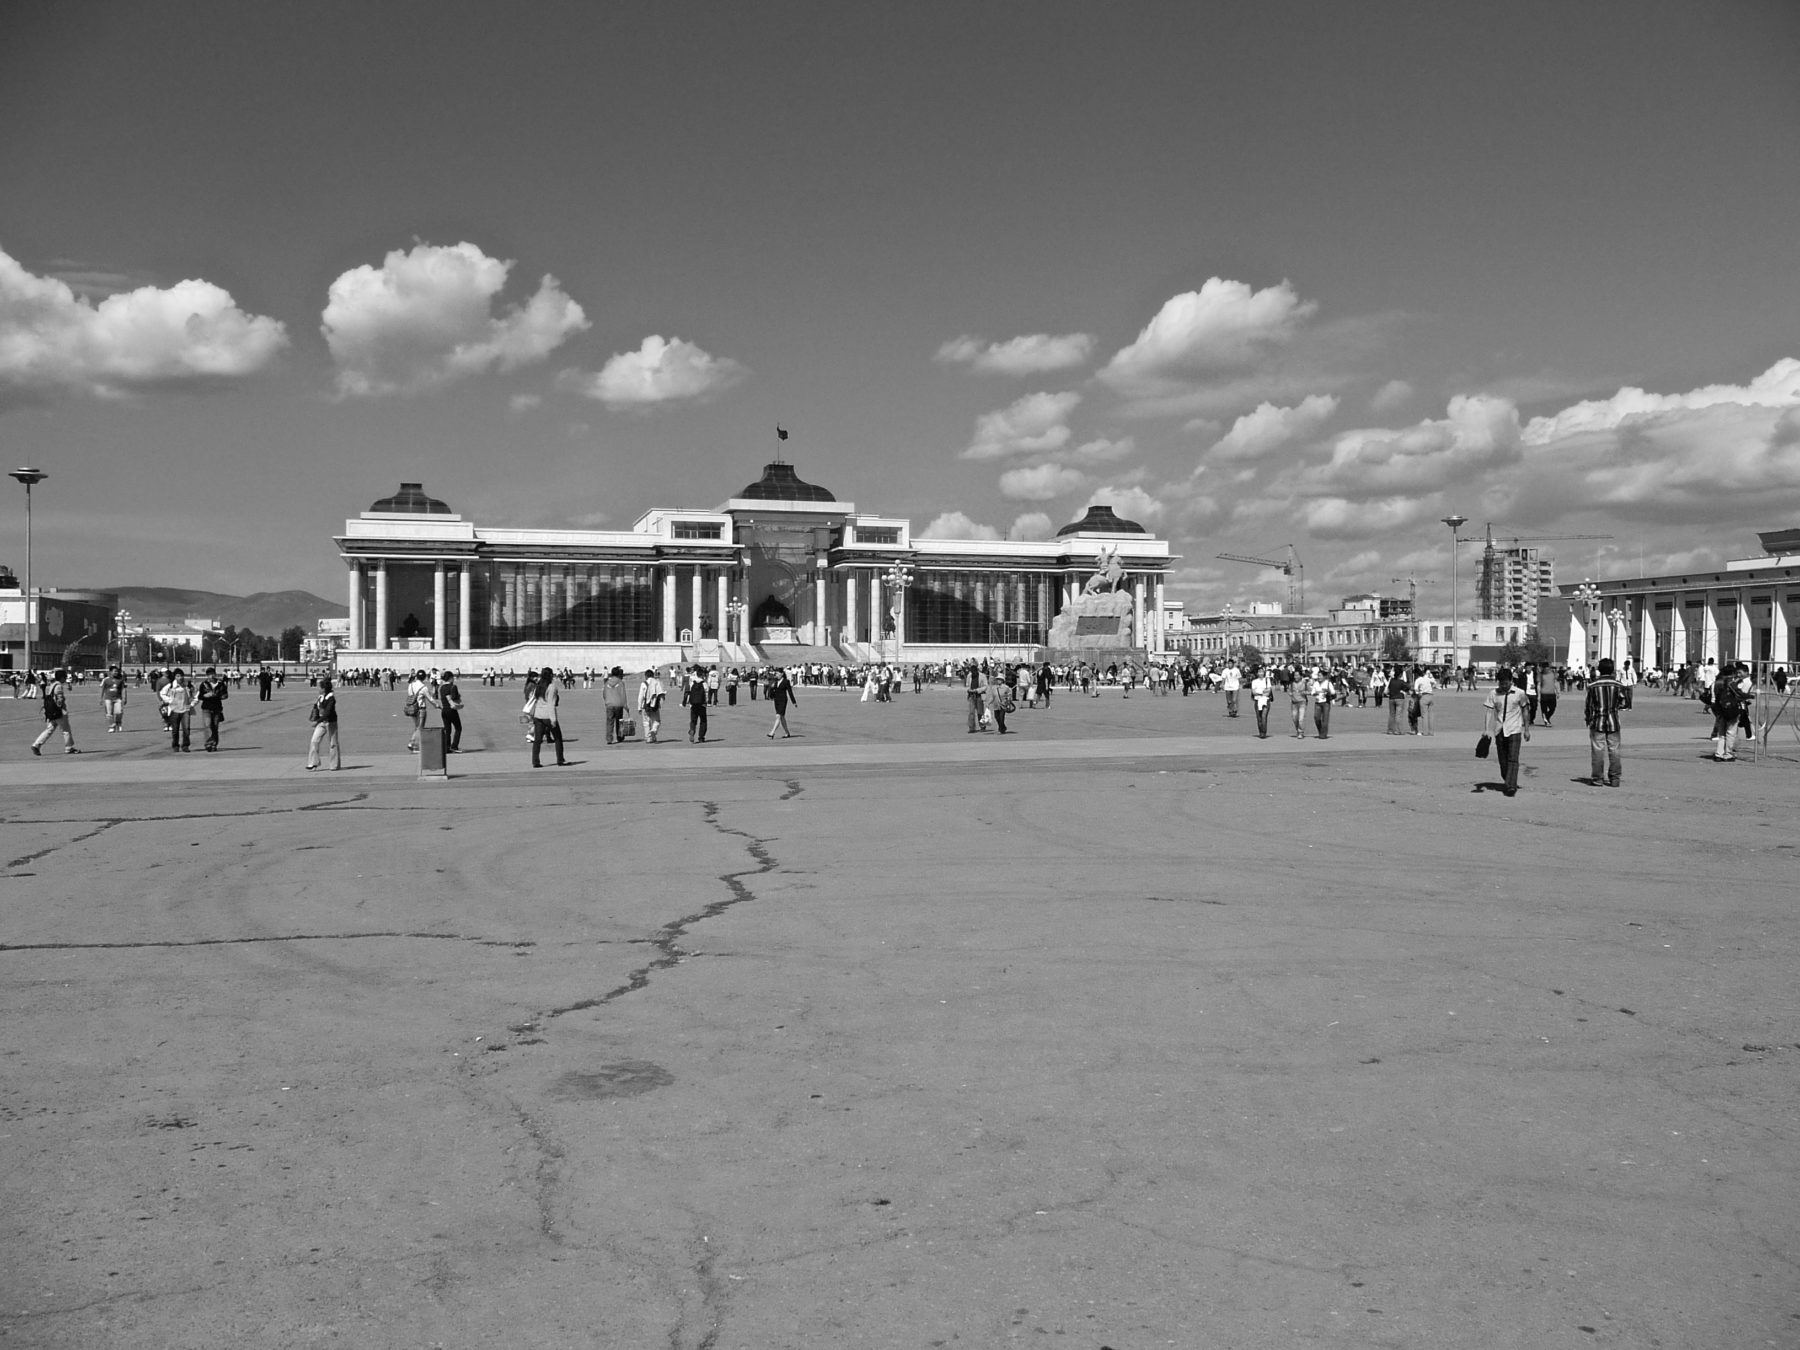 Statue of D.Suukbaatar upon his horse (original location, centre right) was created in 1946 by the sculptor Sonomyn Choimbol (1907-1970). Sukhbaatar Square in Ulaanbaator. 1 September 2008. Photograph: C.Pleteshner